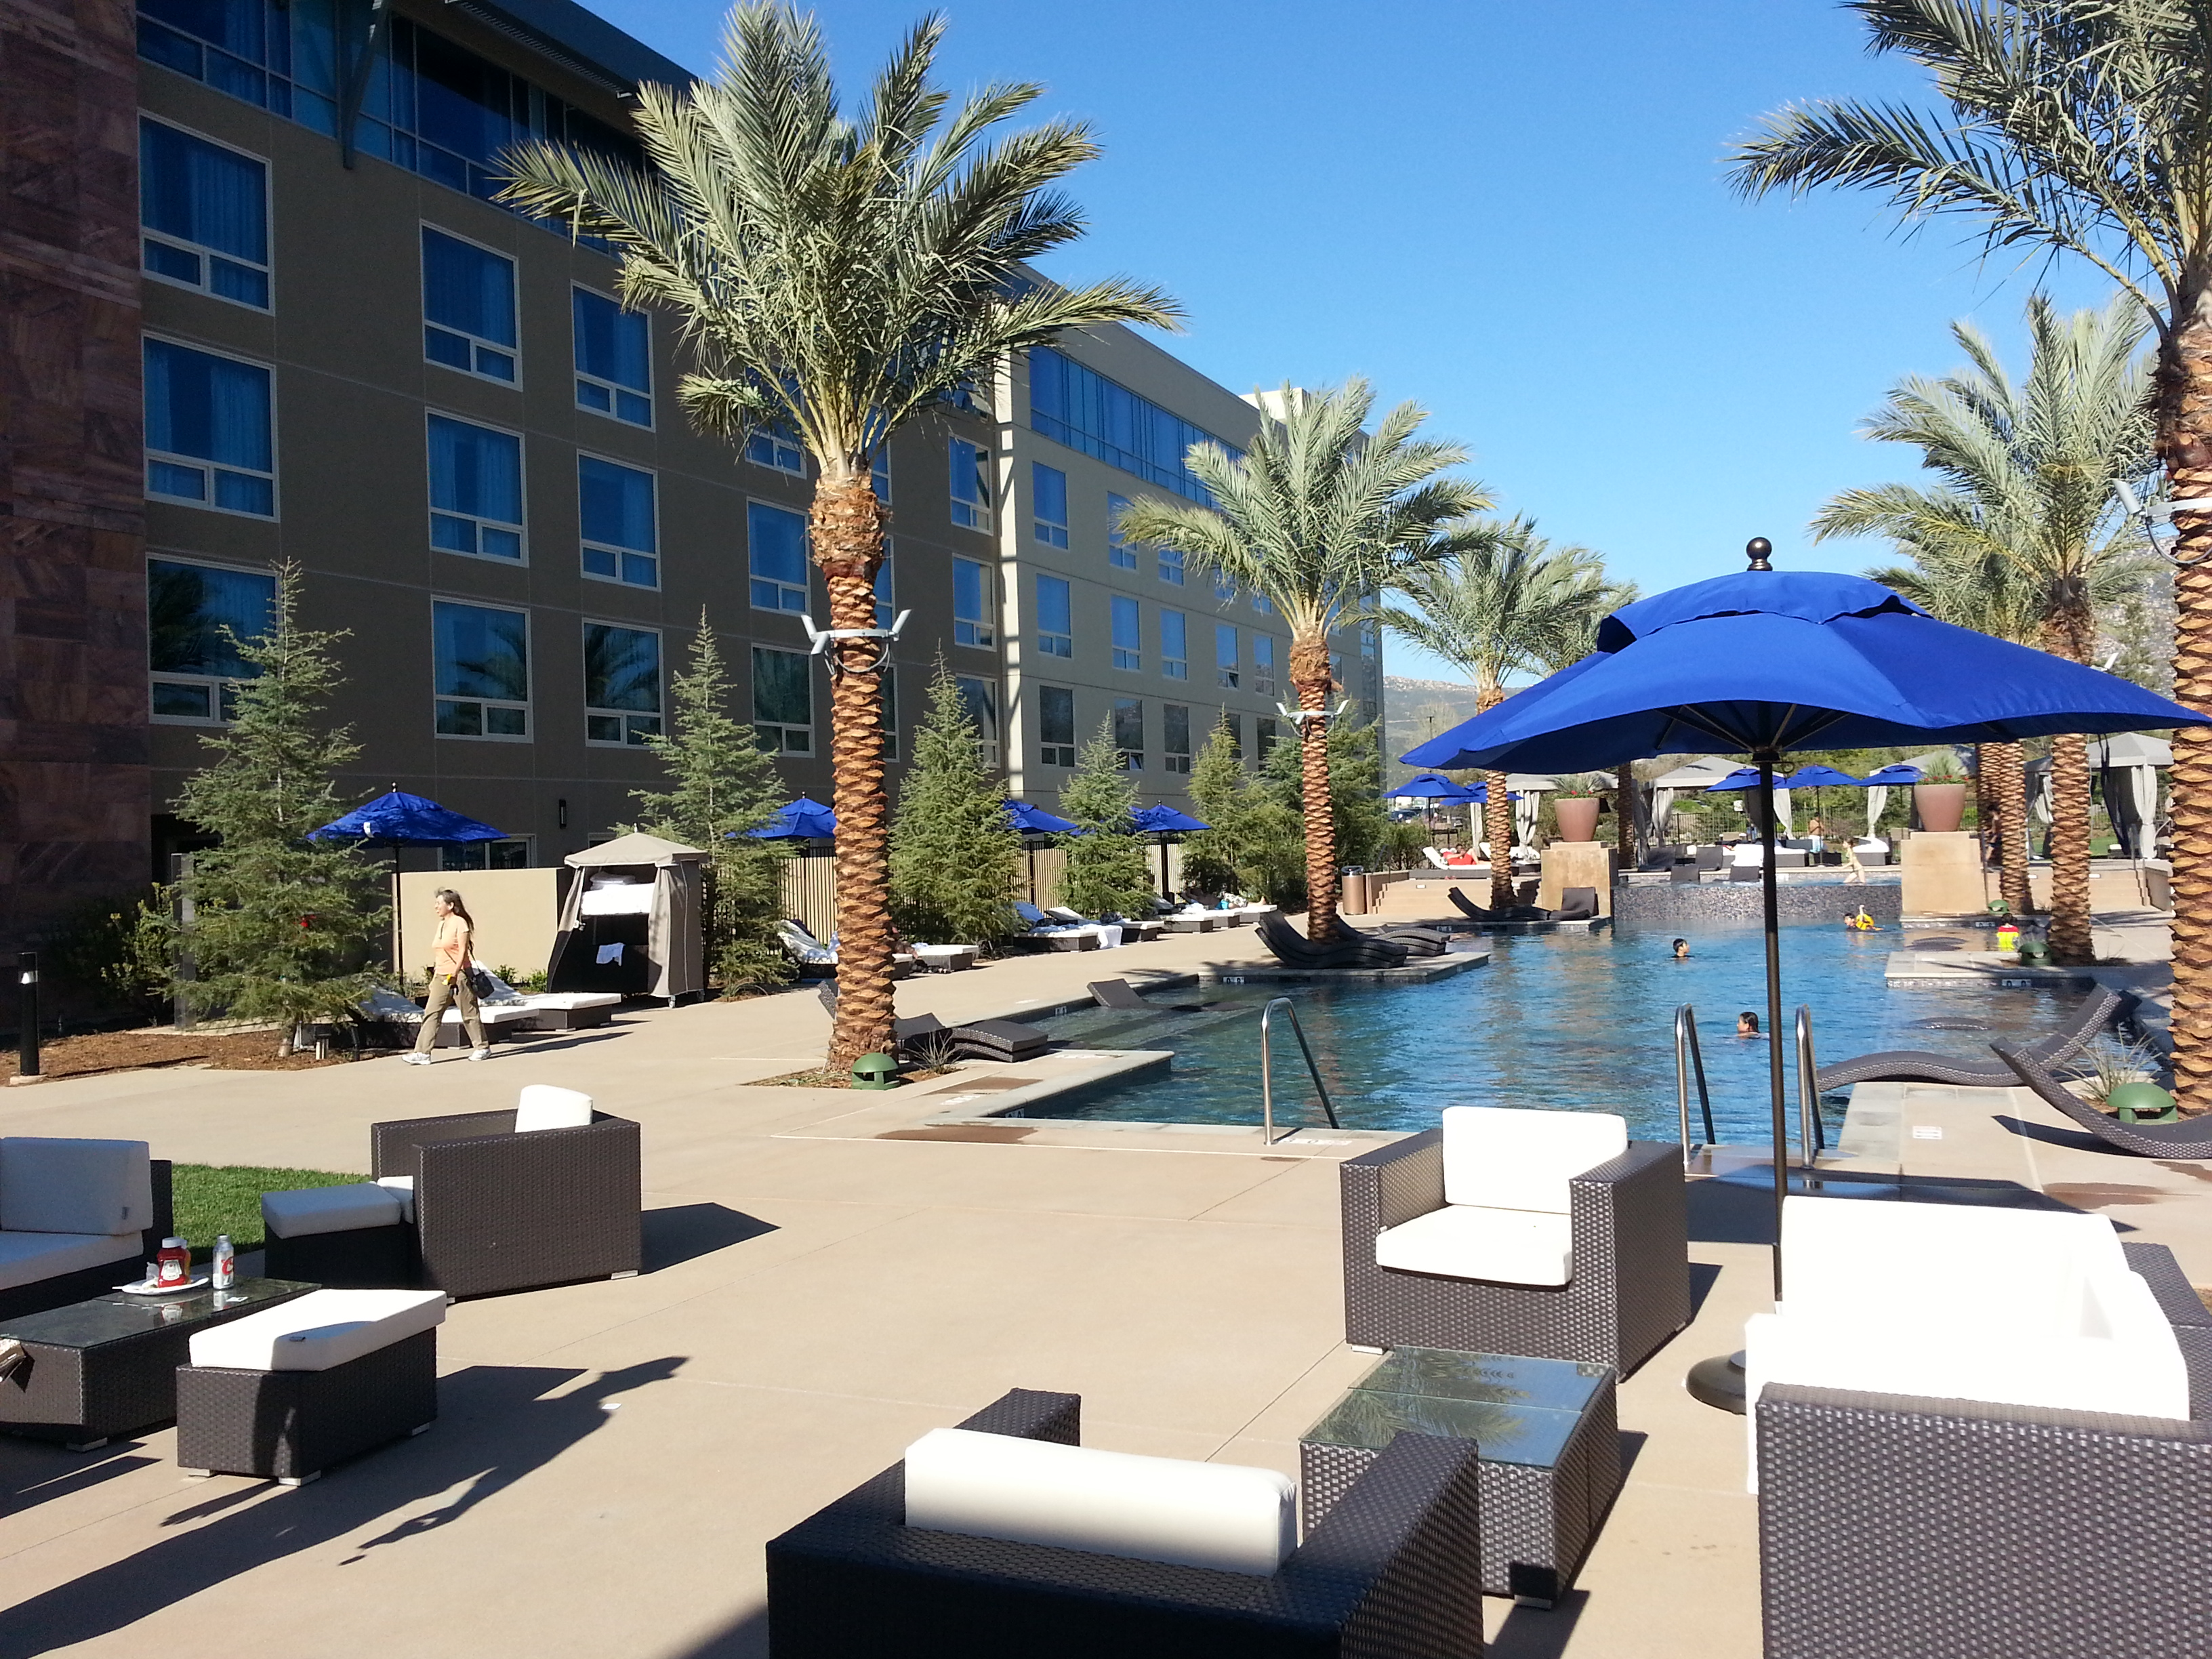 Viejas Resort Hotel Gets Aaa Four Diamond Award Gothere